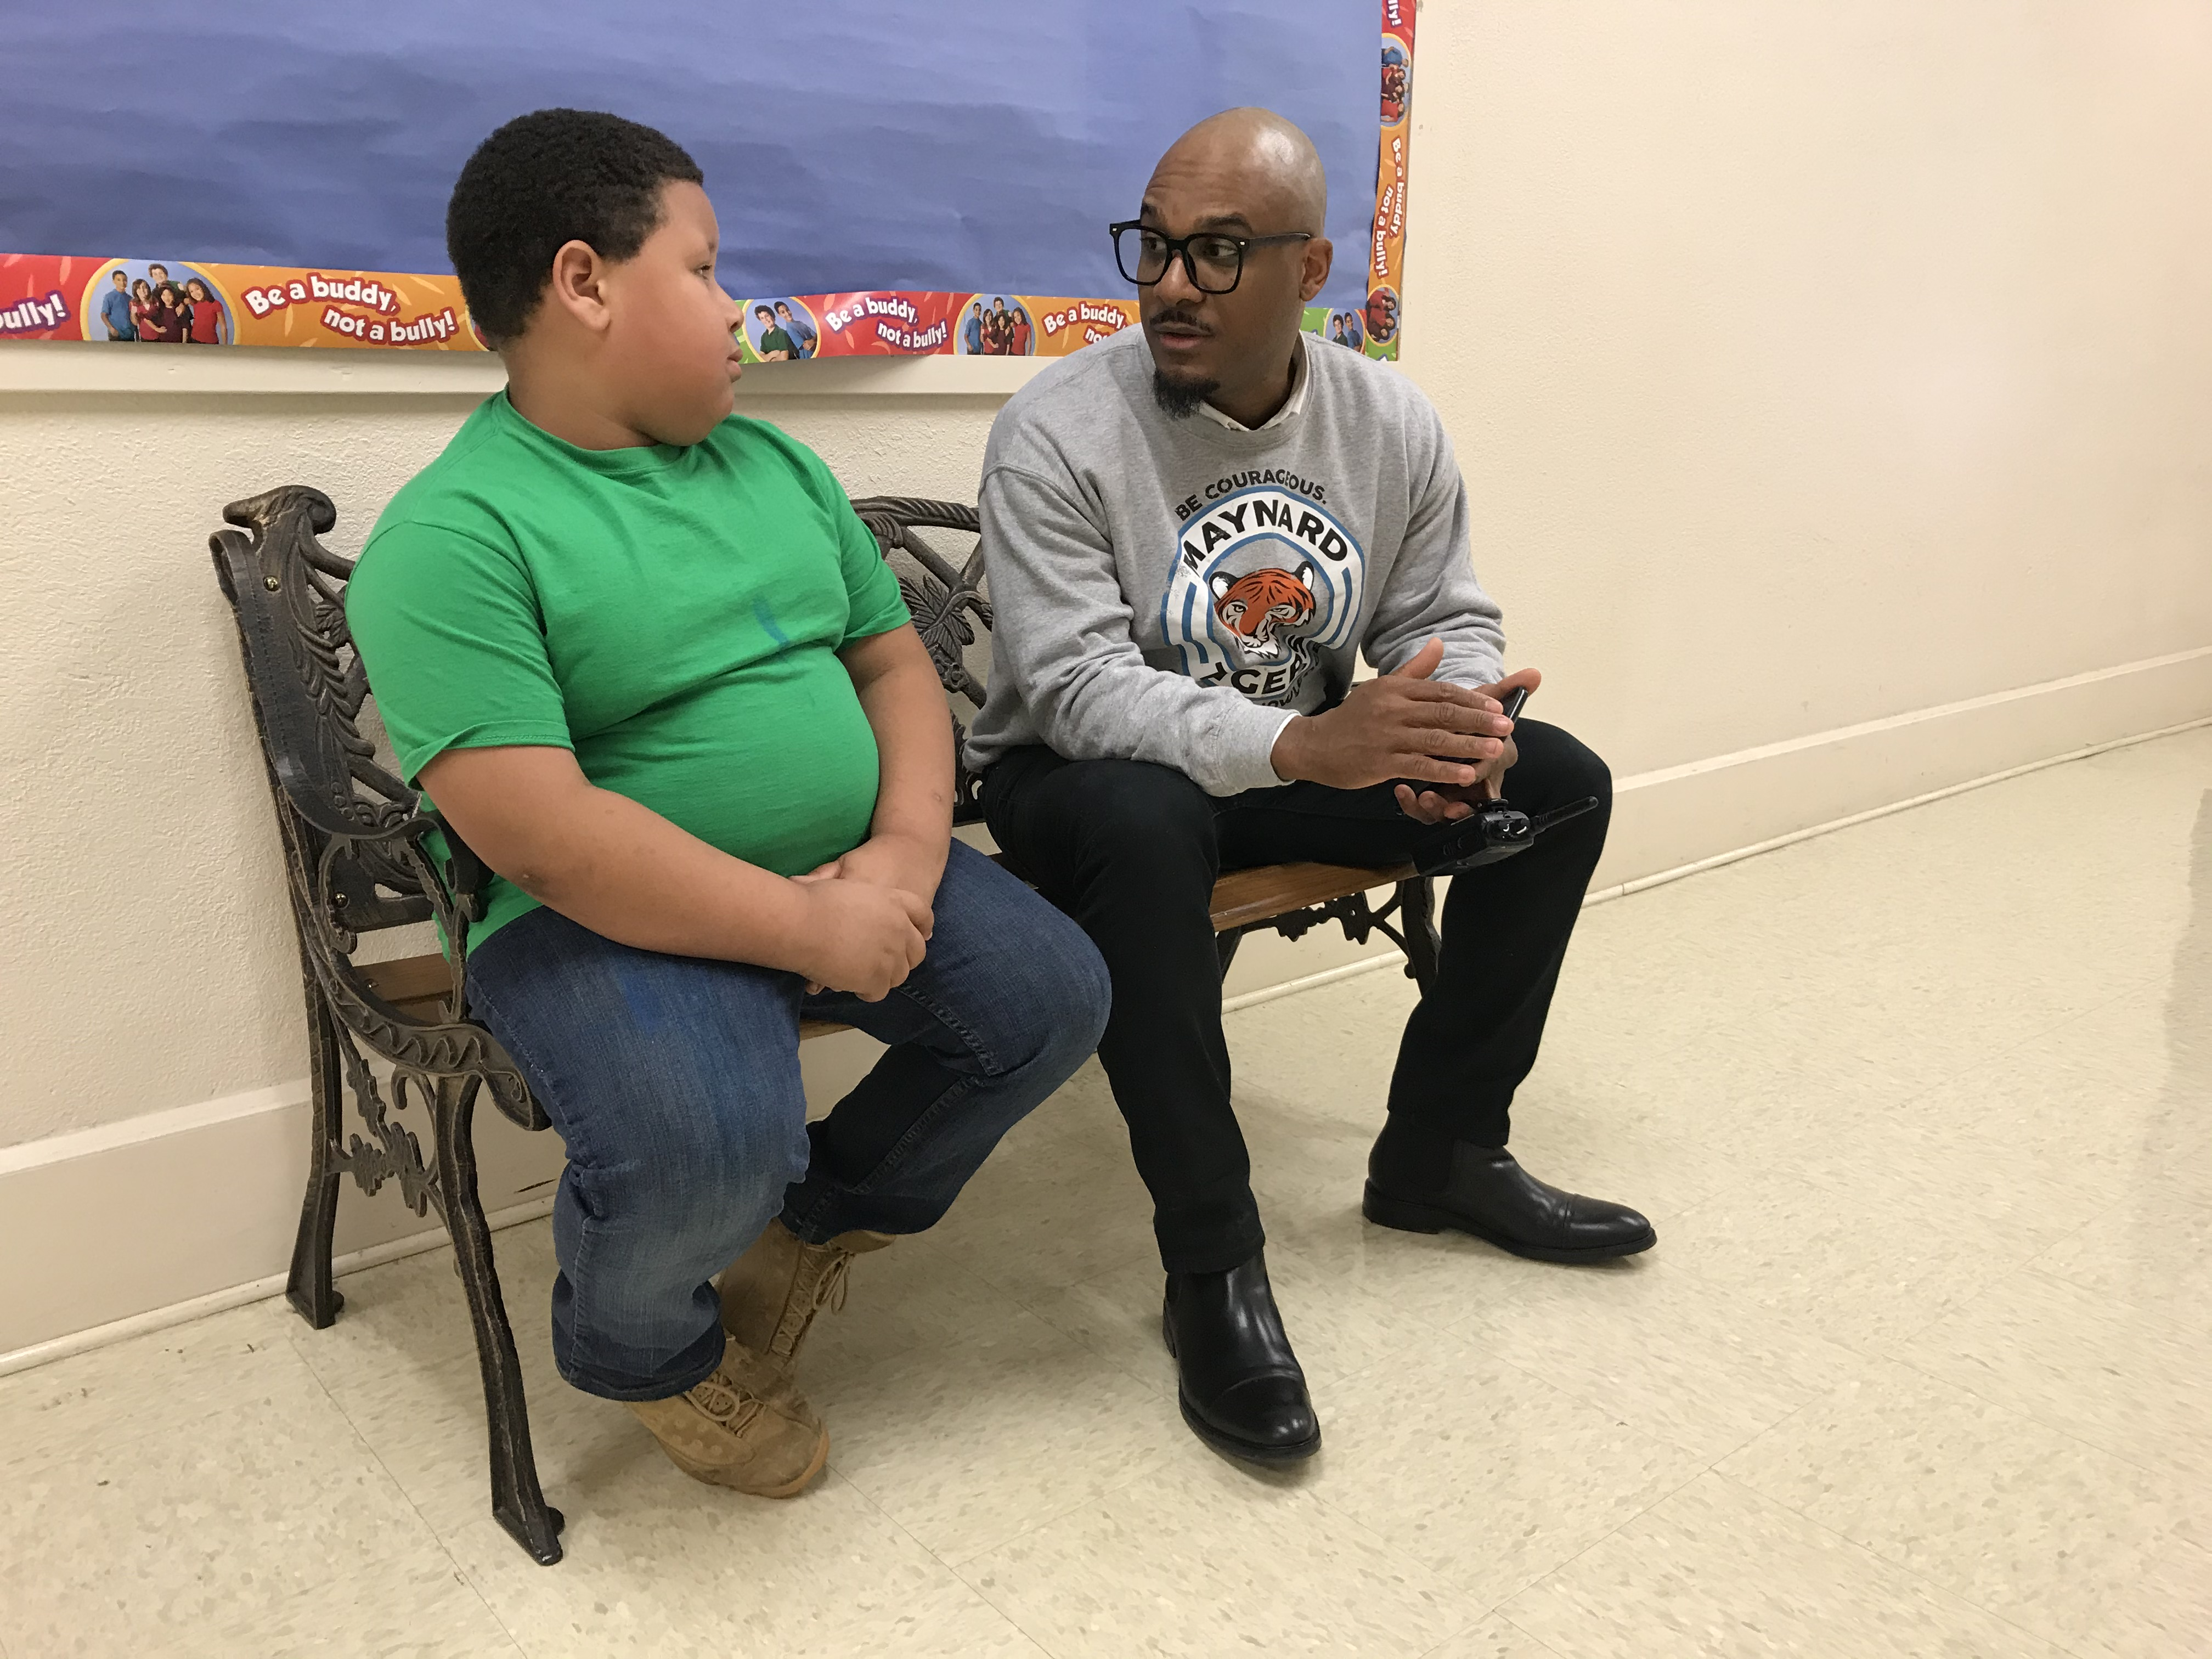 Maynard Elementary Principal Dexter Murphy visits with a student on Jan. 17, 2020. Murphy recently received the Dr. Martin Luther King, Jr. Commemorative Commission's Education Award.